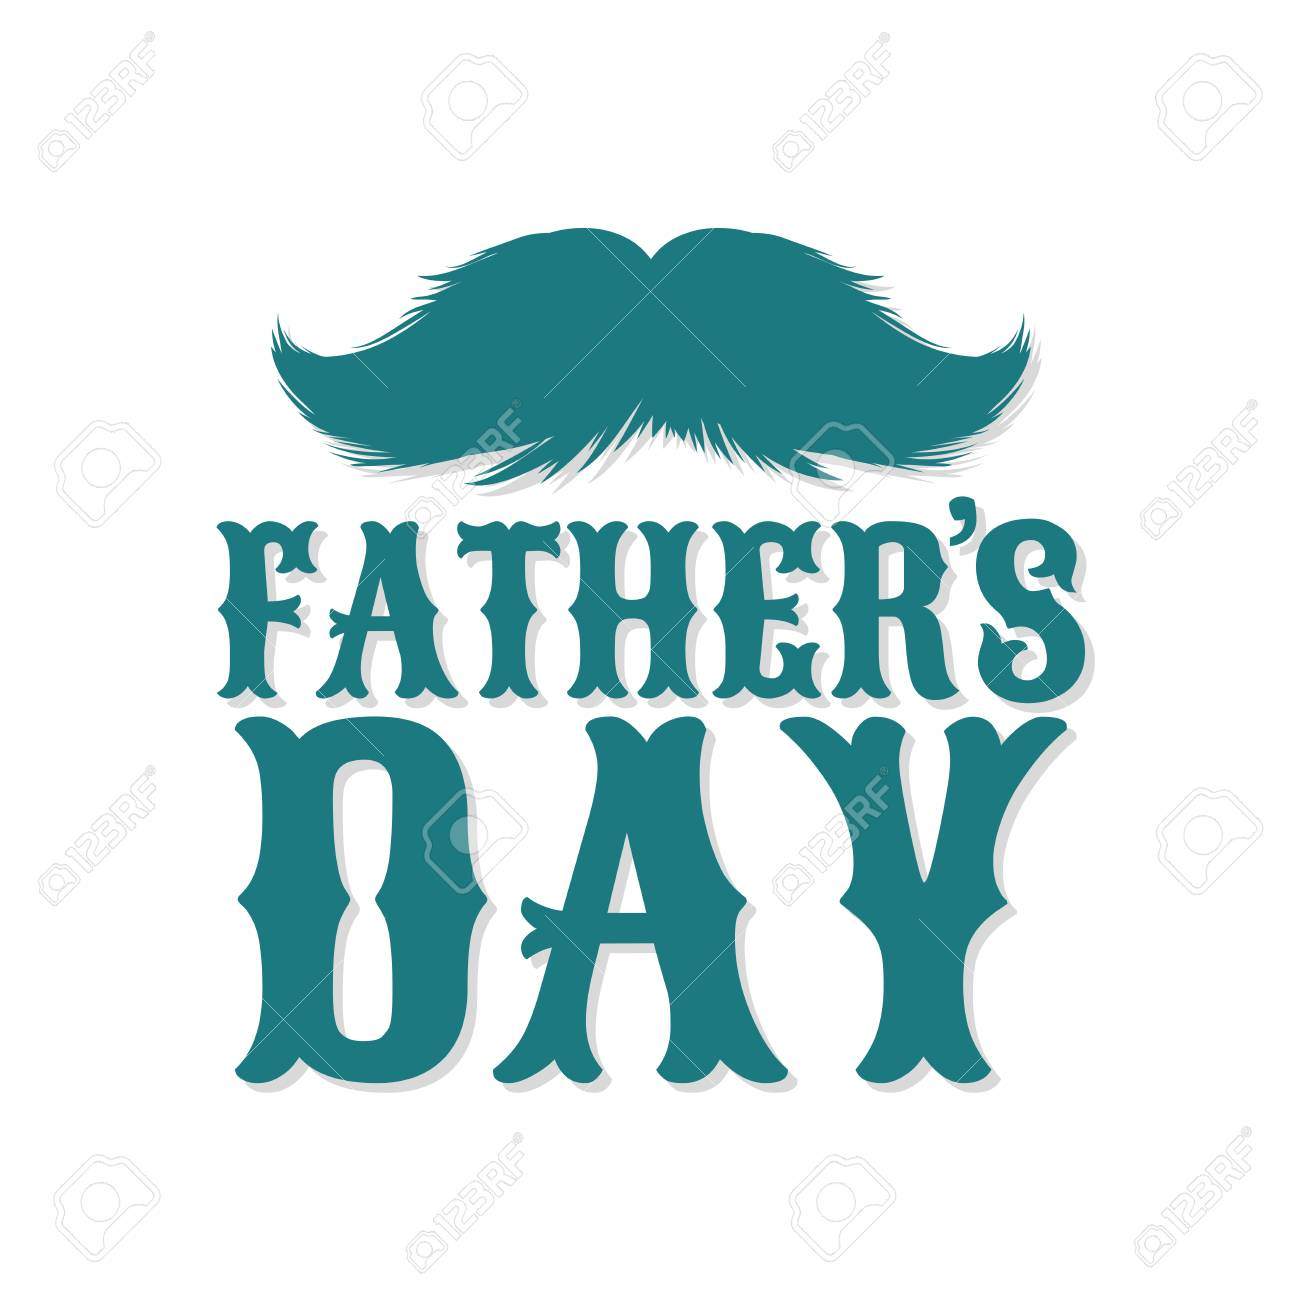 hight resolution of fathers day holiday poster with mustache silhouette moustaches clipart paper cutting design mustache